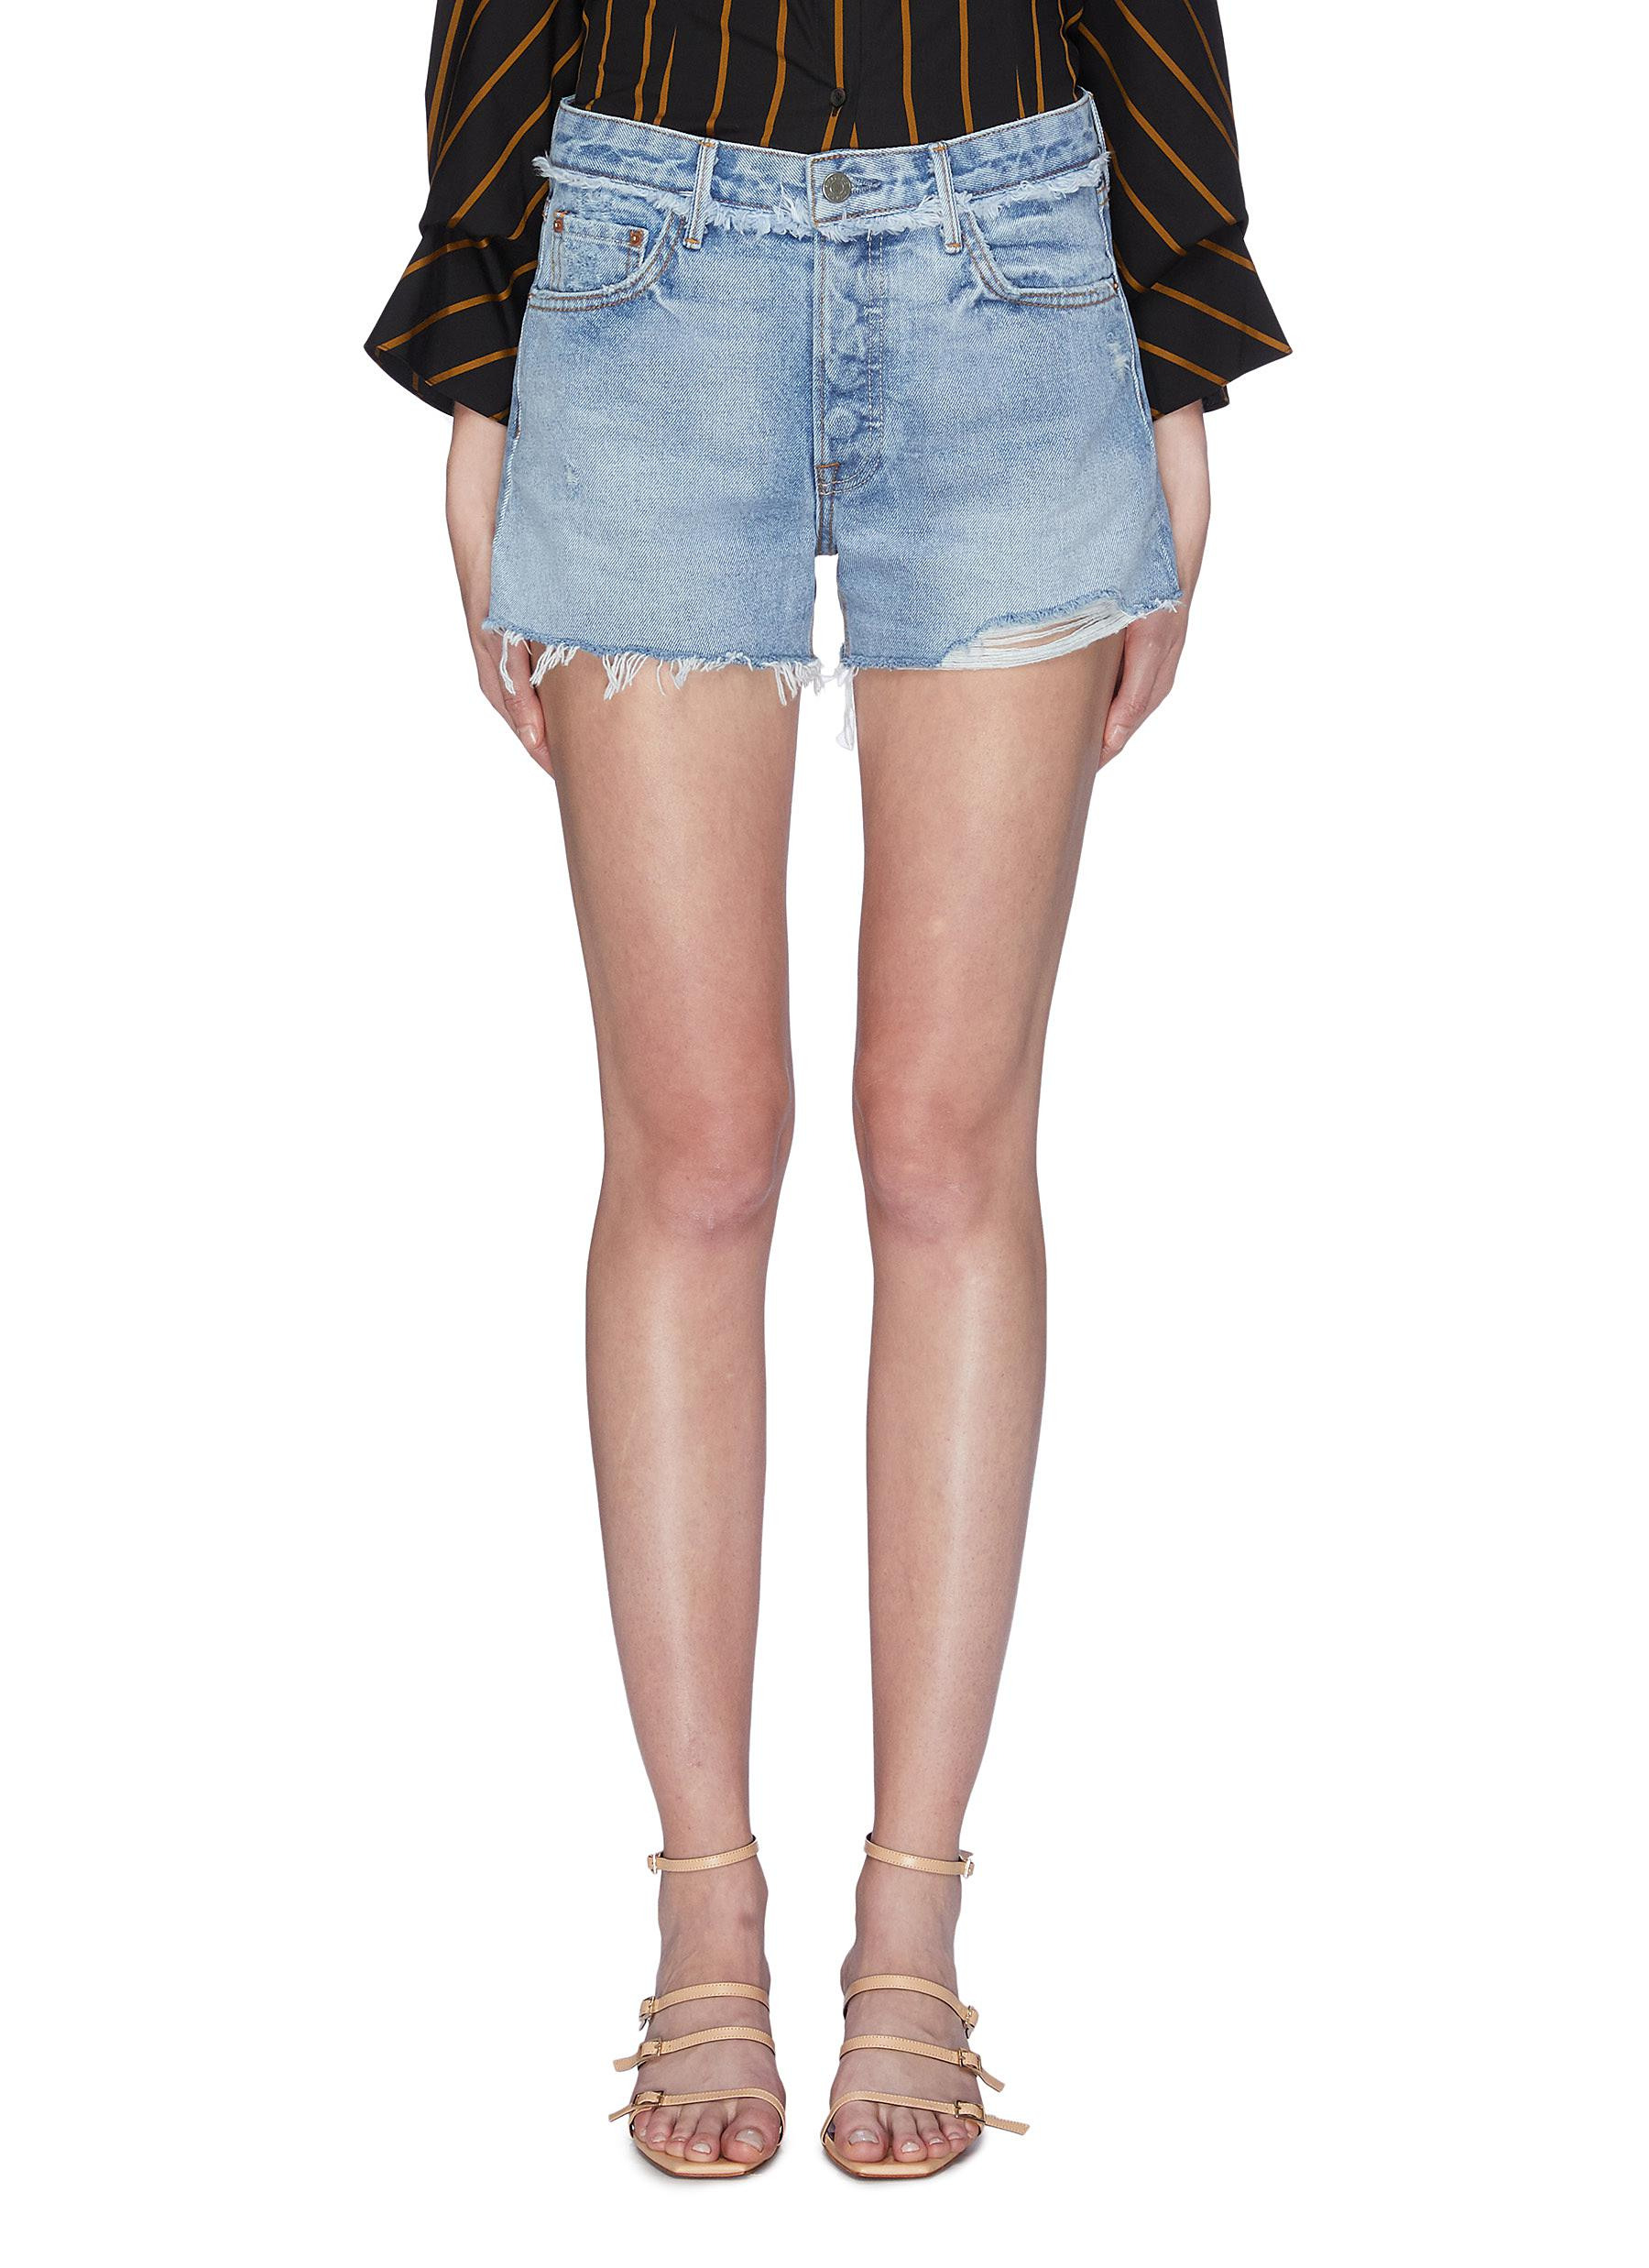 Helena raw cuff denim shorts by Grlfrnd